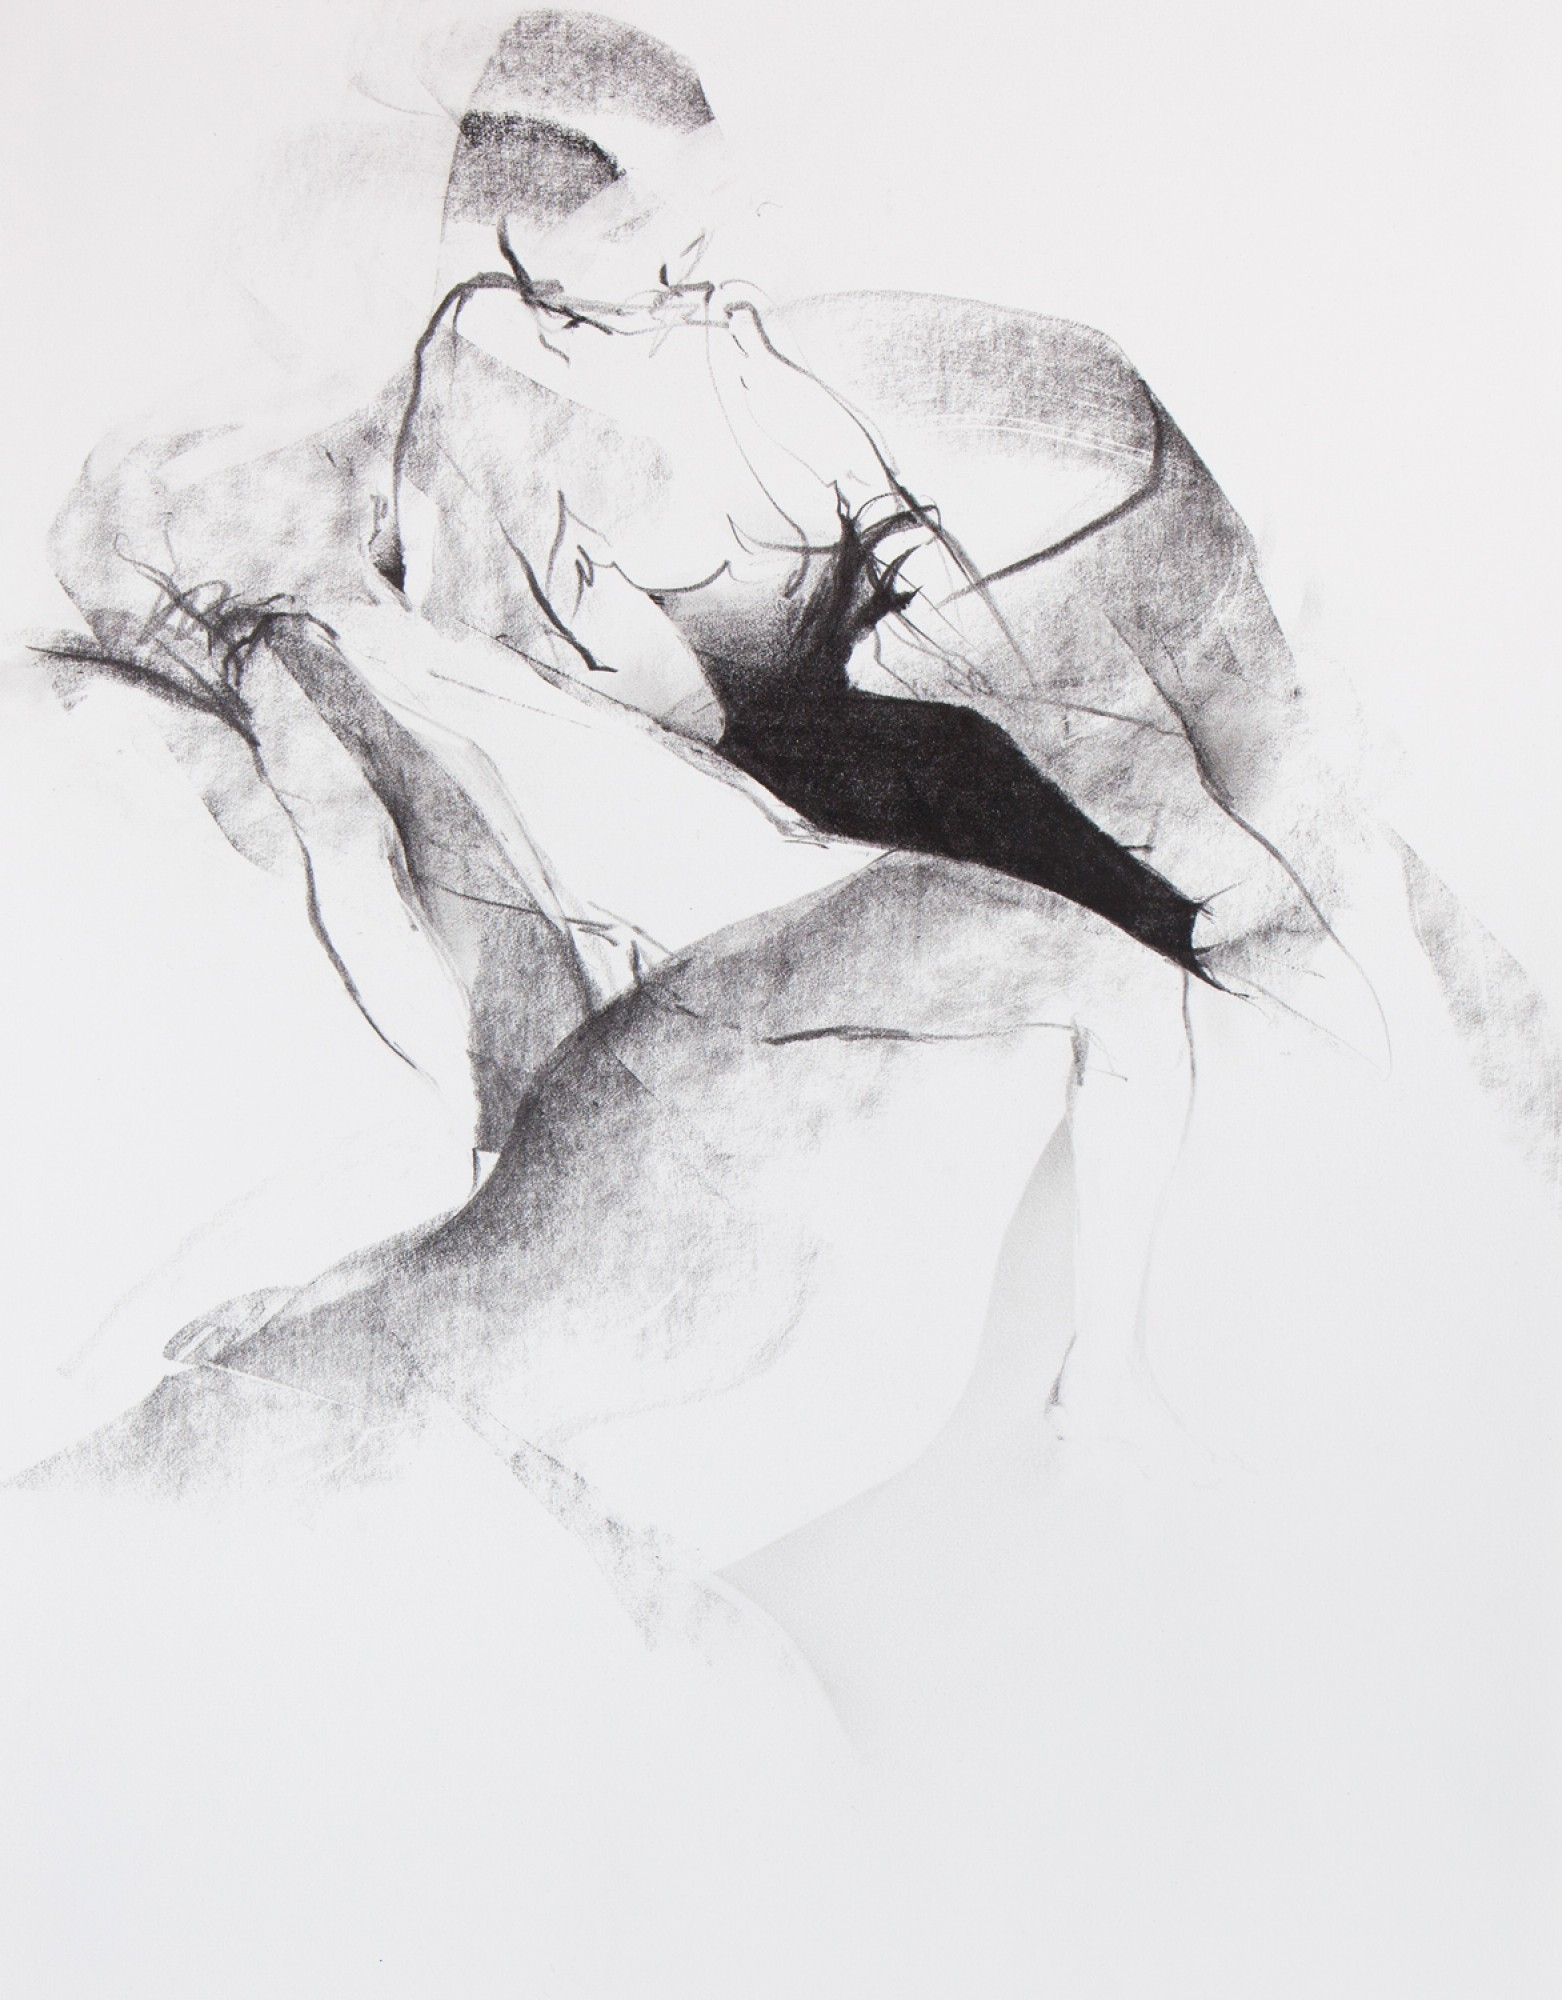 Natascha Schmitten - Untitled, 2019, graphite on paper, 40 x 30 cm